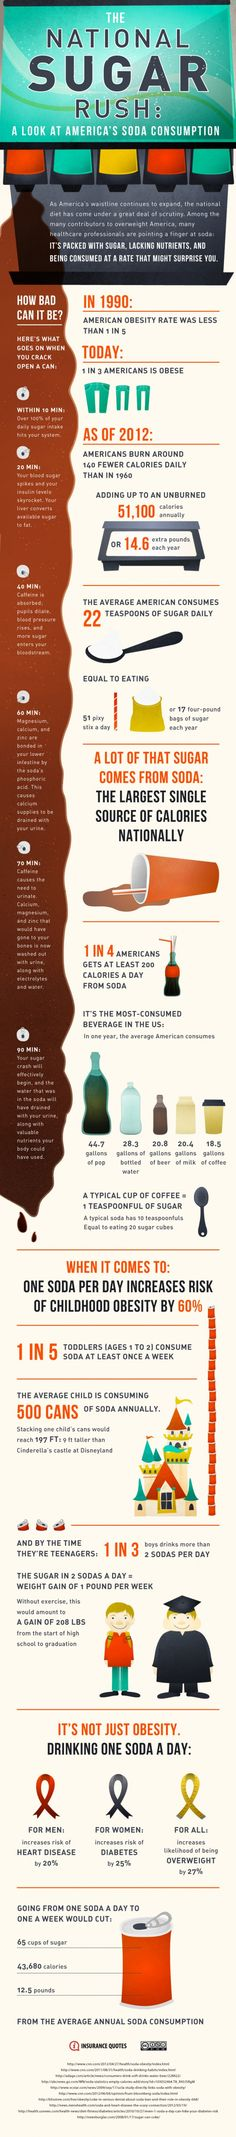 Still want that Pepsi feeling? Have a Coke and a smile...that's not all you get! You may want to rethink your drink!